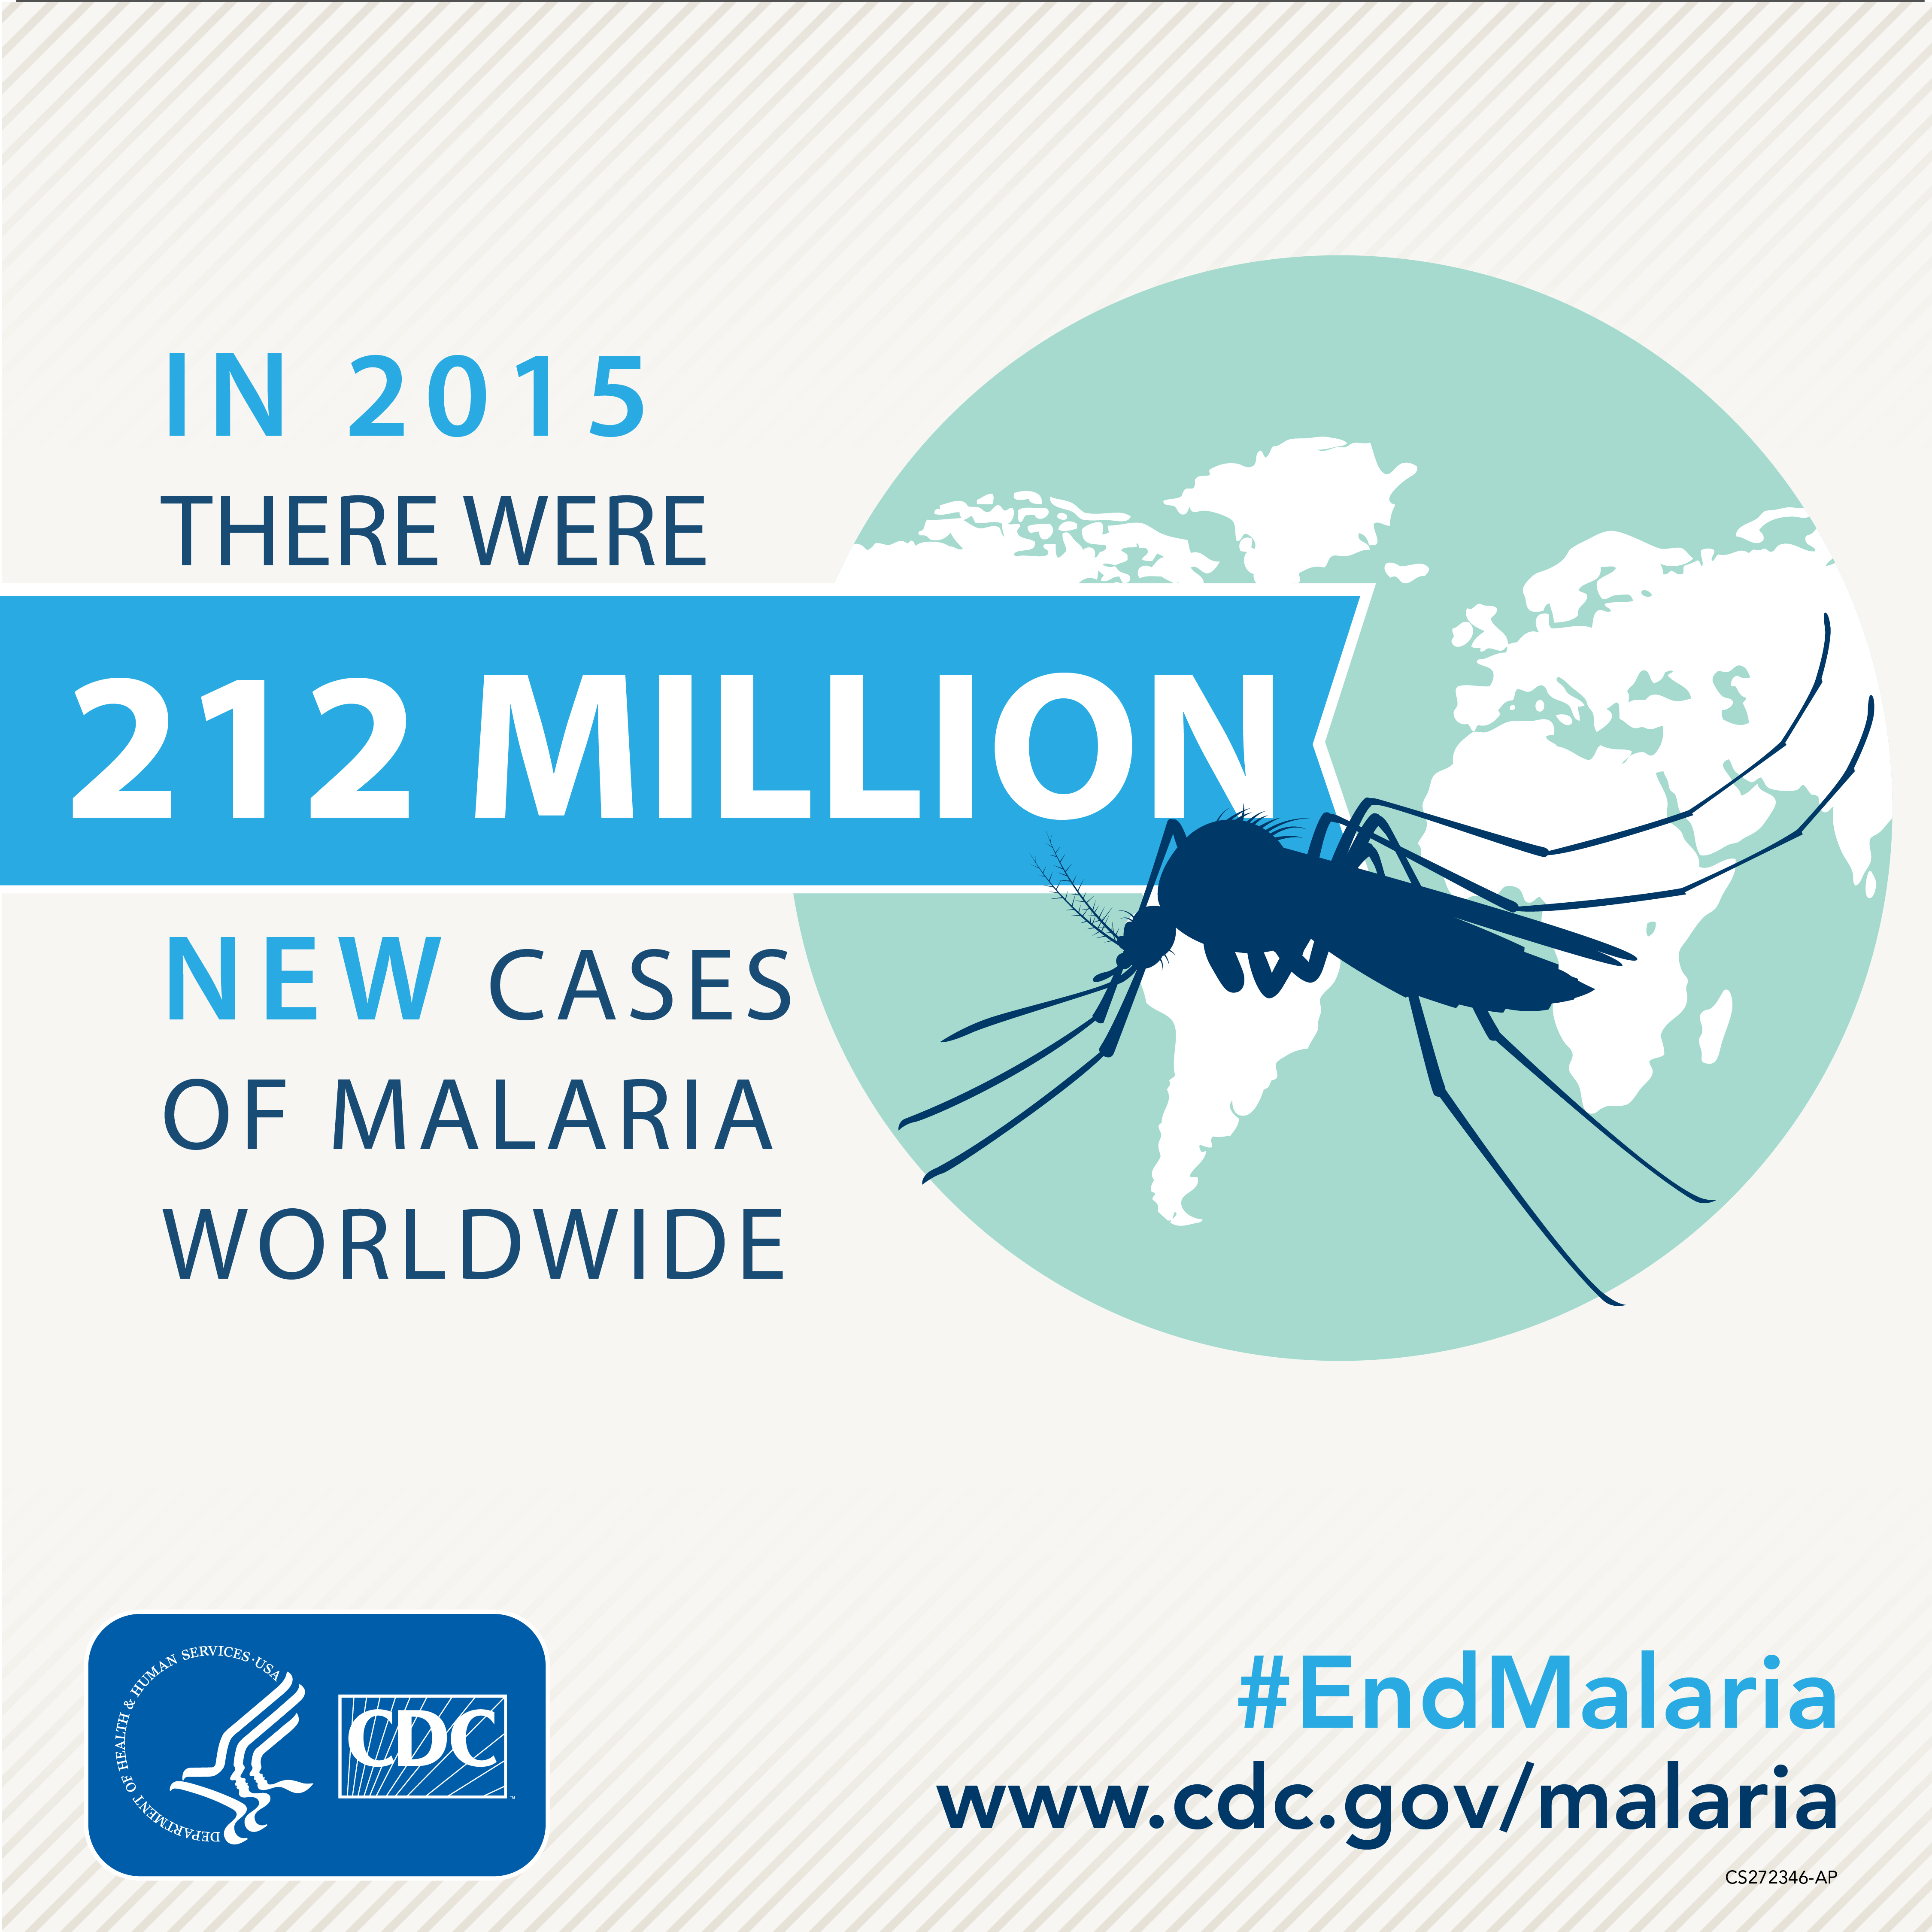 In 2015 there were 212 million new cases of Malaria Worldwide